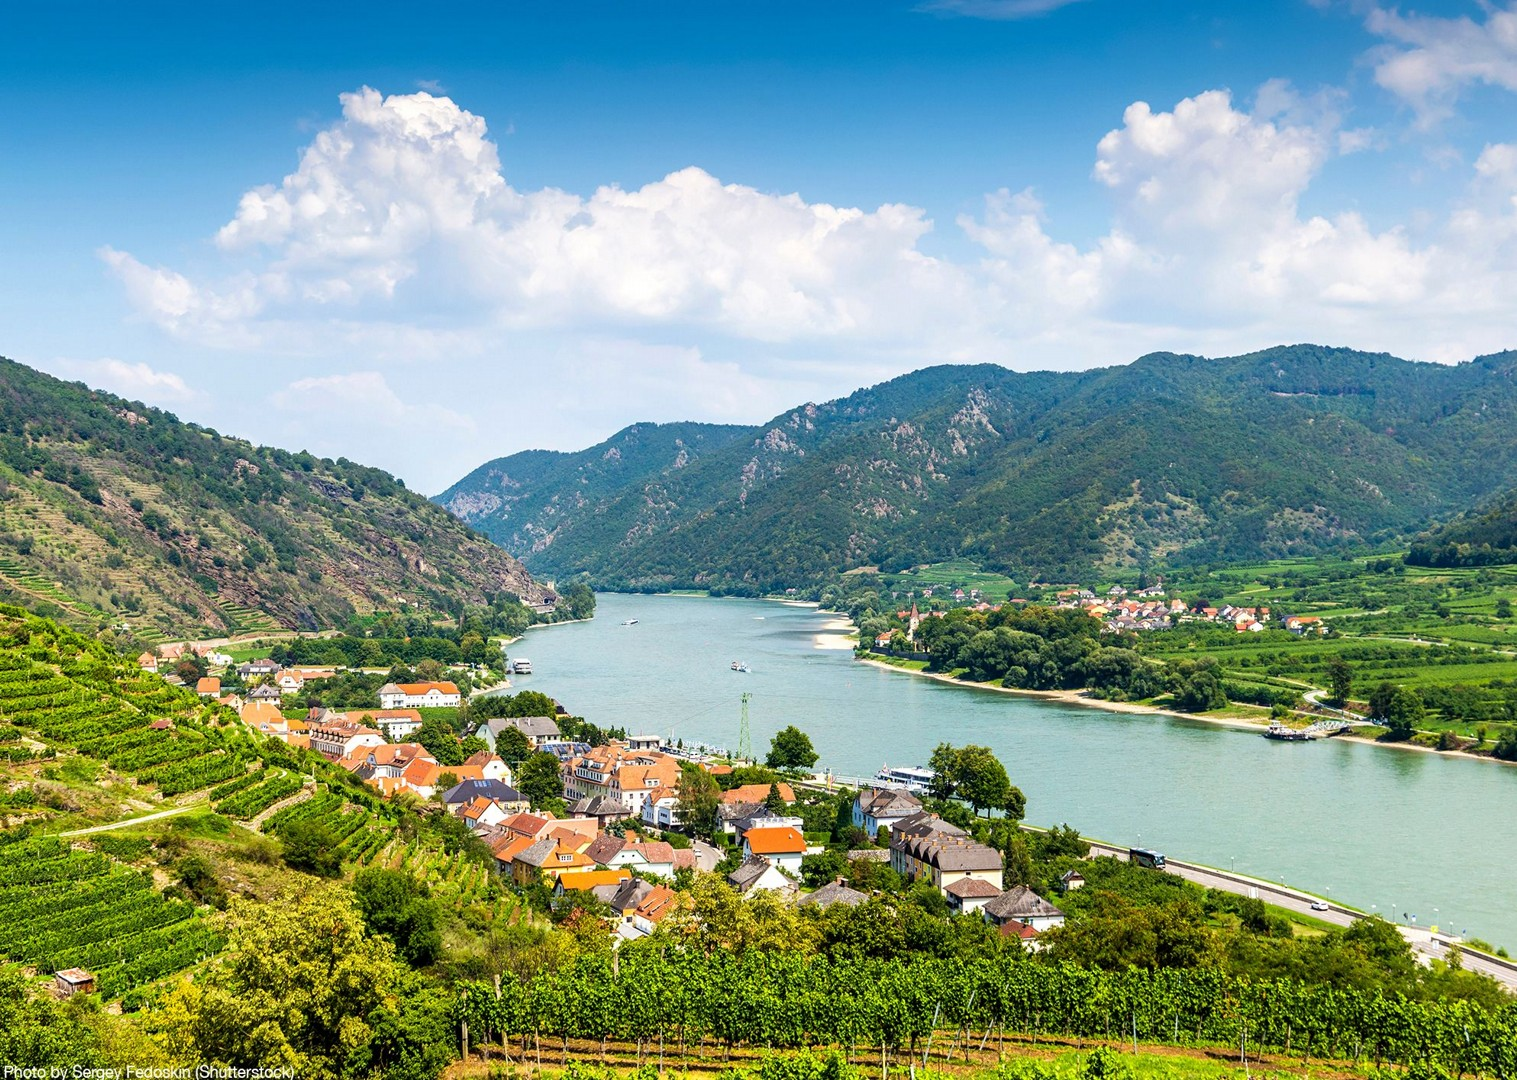 incredible-scenery-danube-river-cycle-tour-self-guided.jpg - Germany and Austria - The Danube Cyclepath (8 Days) - Self-Guided Leisure Cycling Holiday - Leisure Cycling